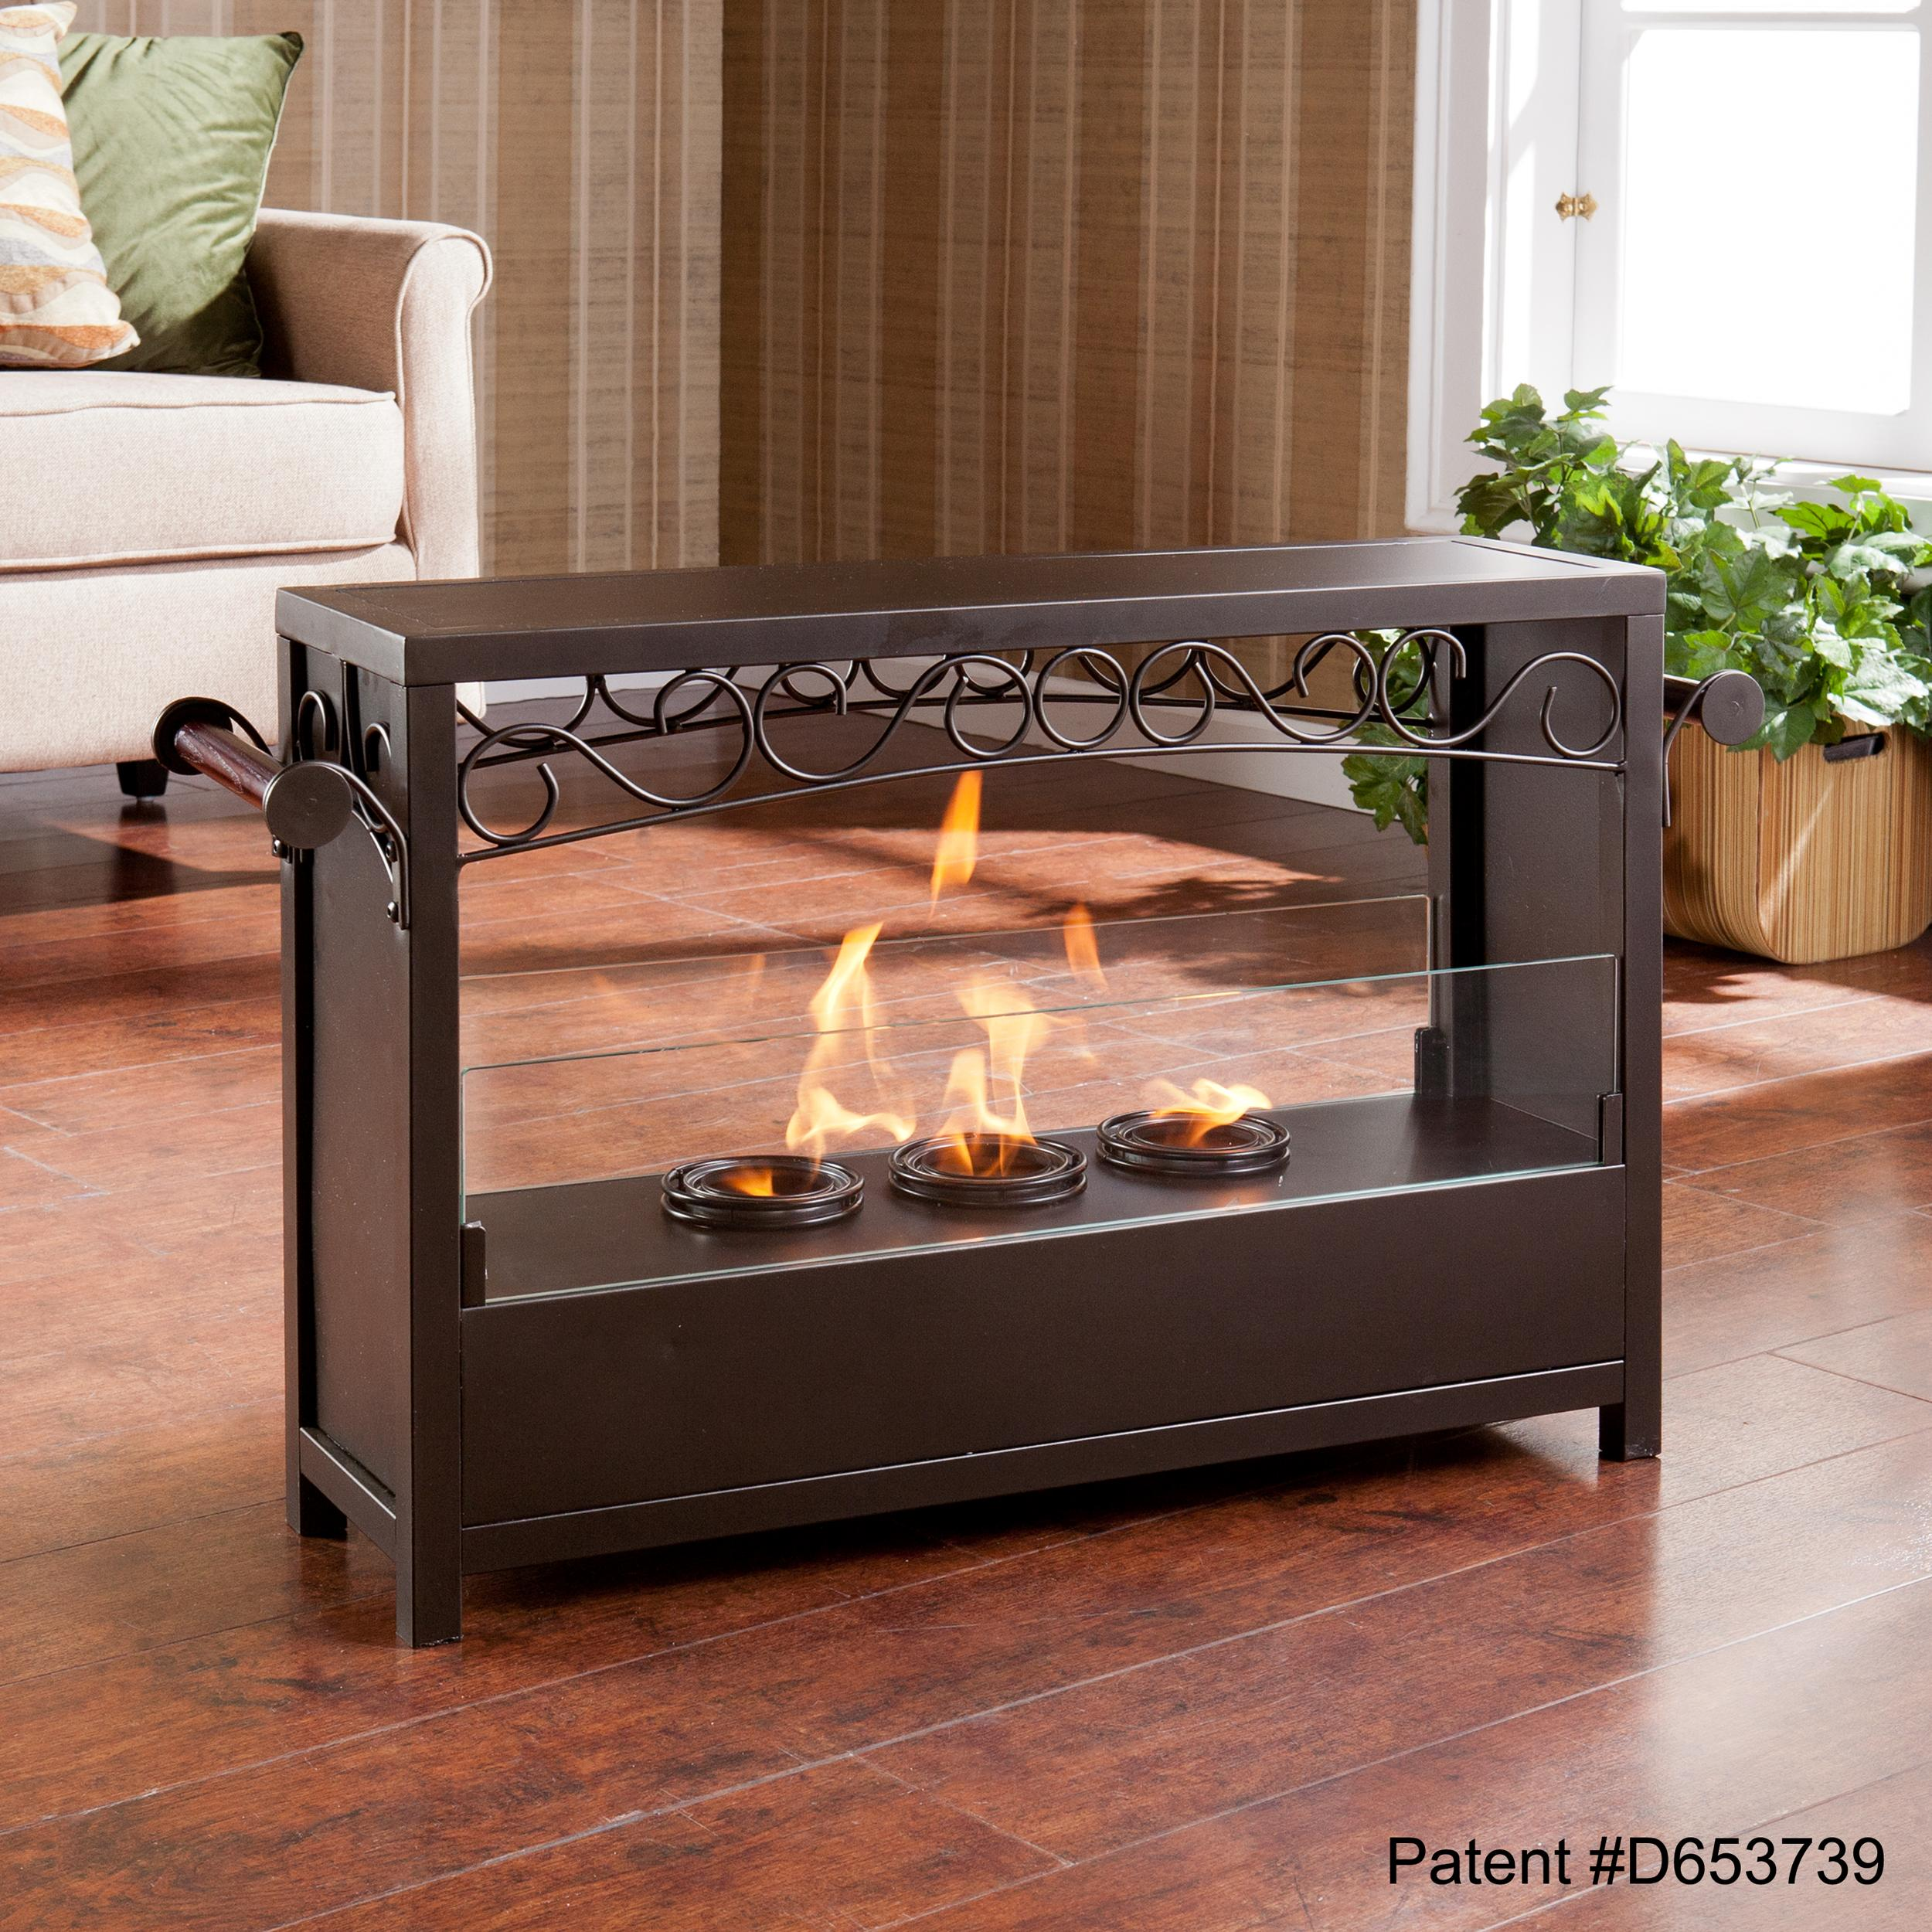 View larger for Indoor outdoor fireplace